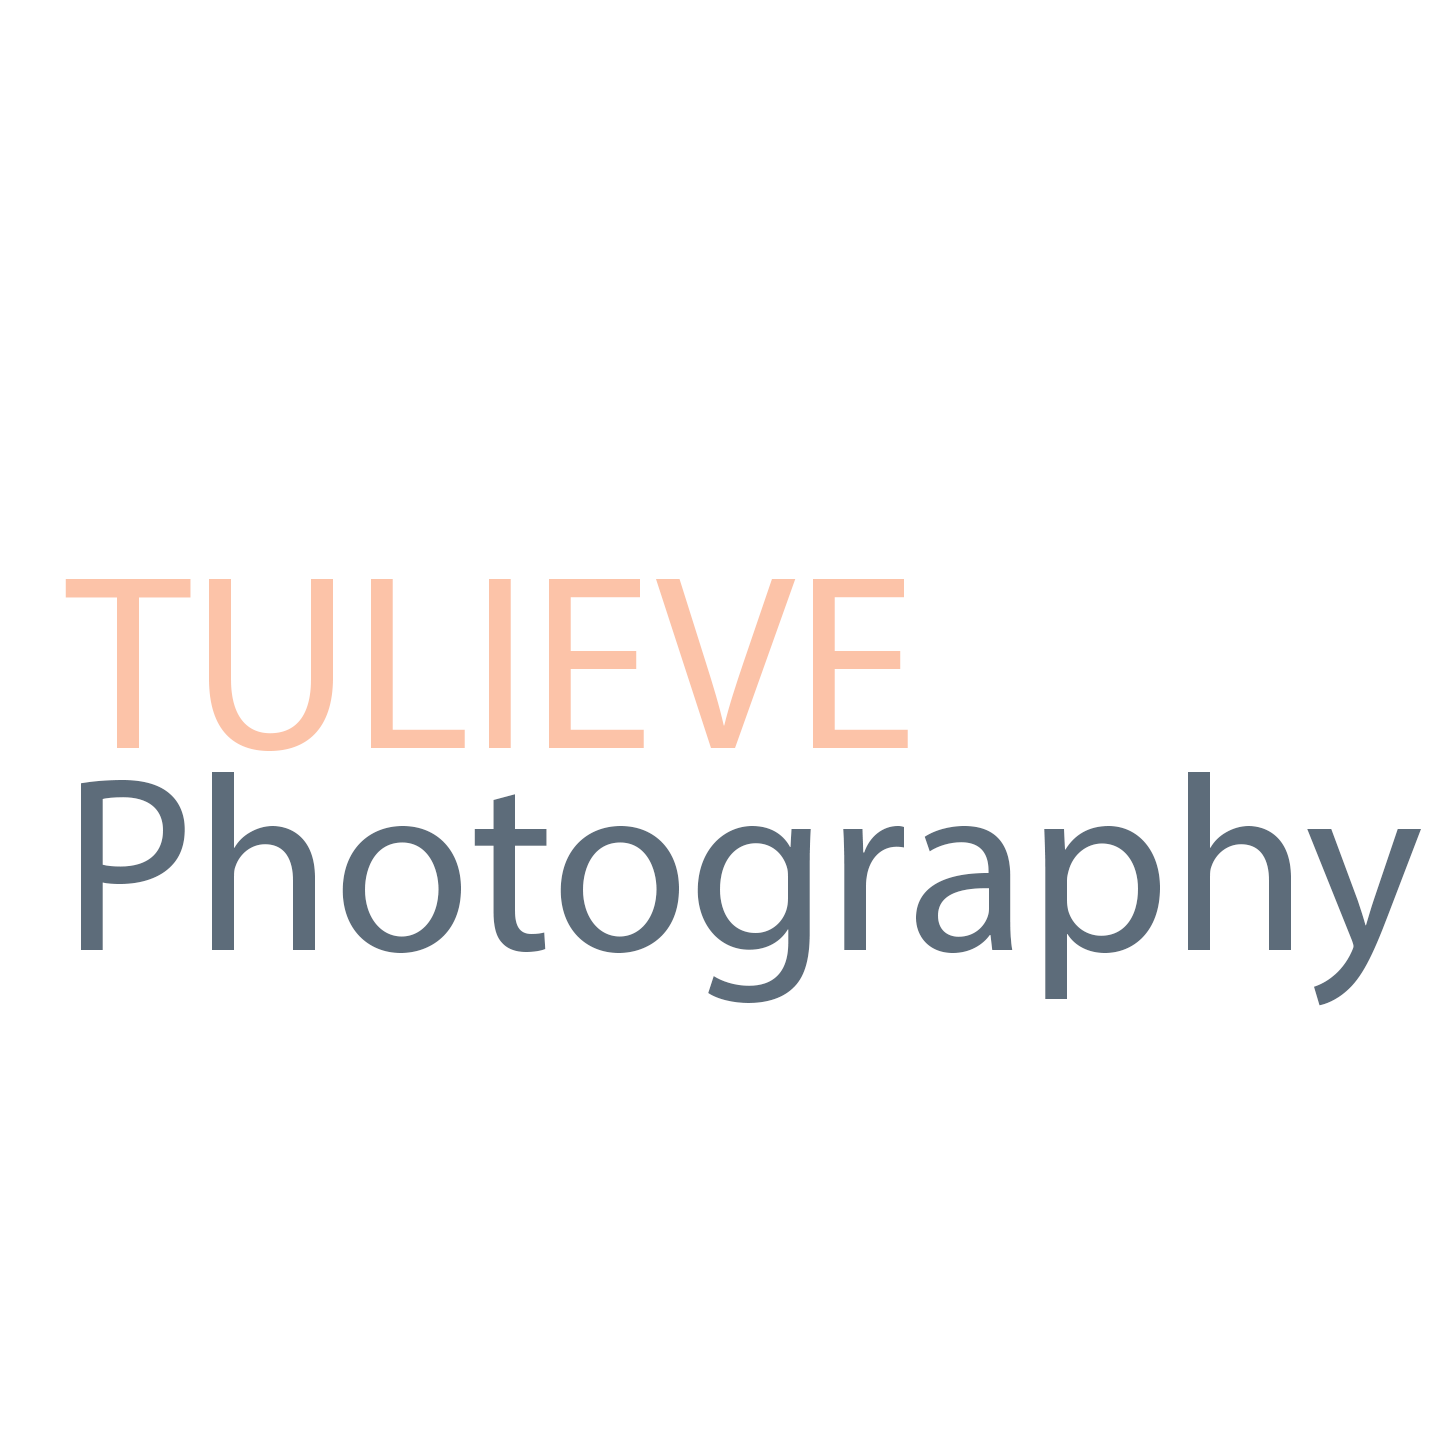 Tulieve Photography